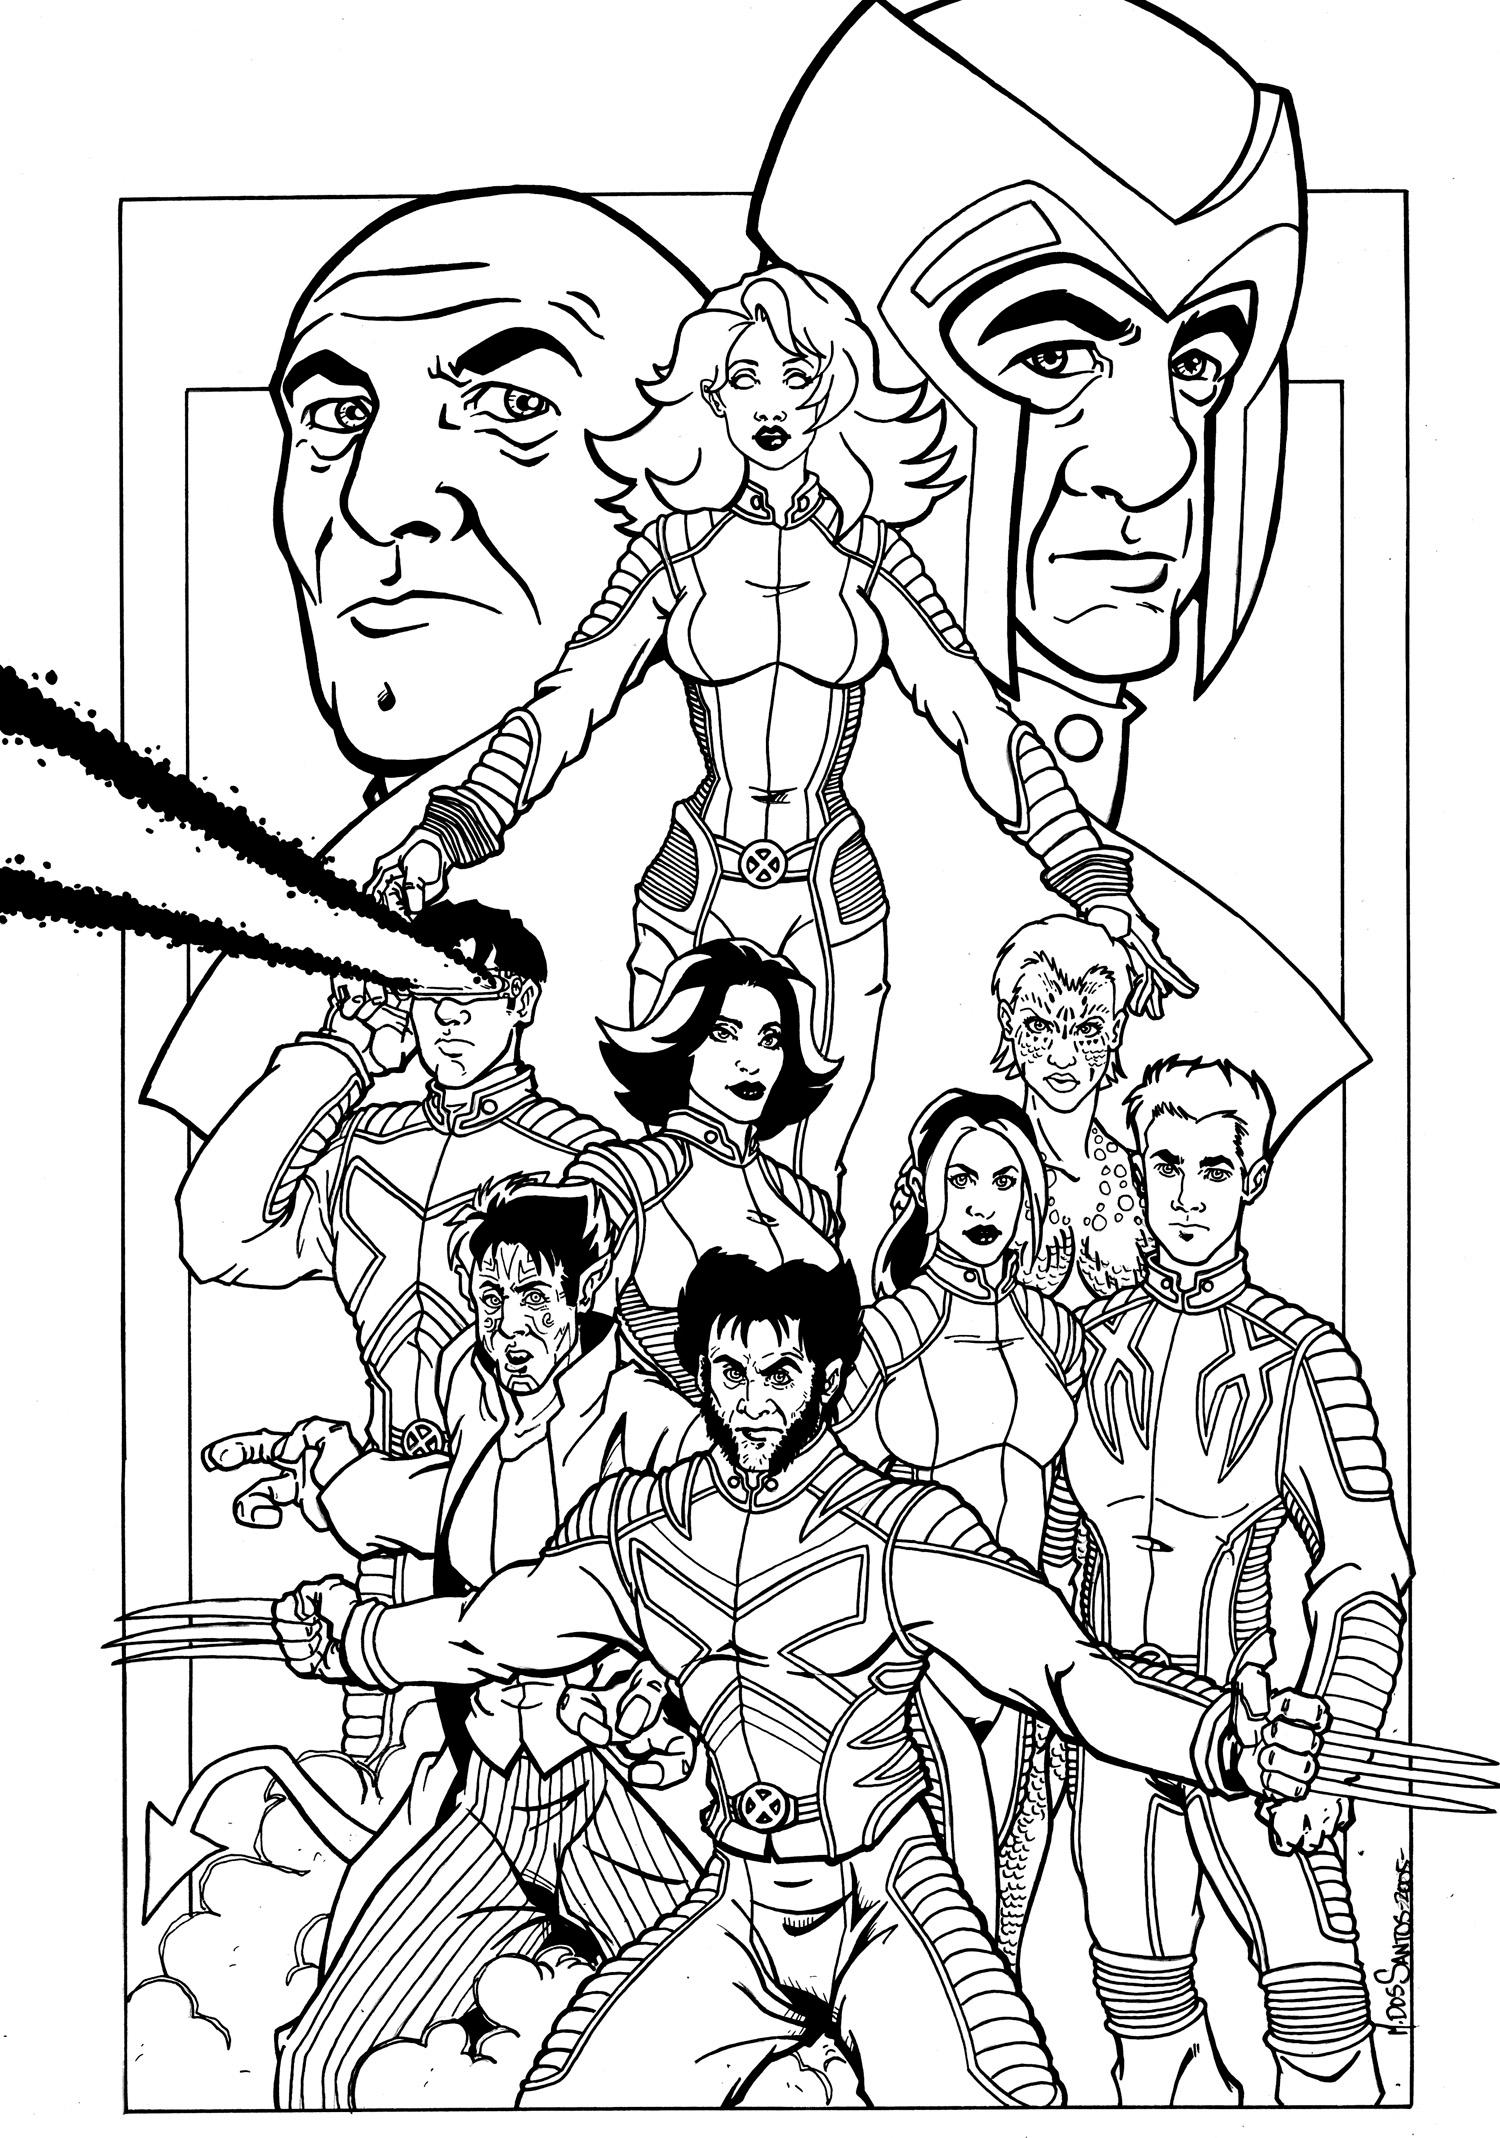 xmen coloring pages x men coloring pages to download and print for free pages xmen coloring 1 1